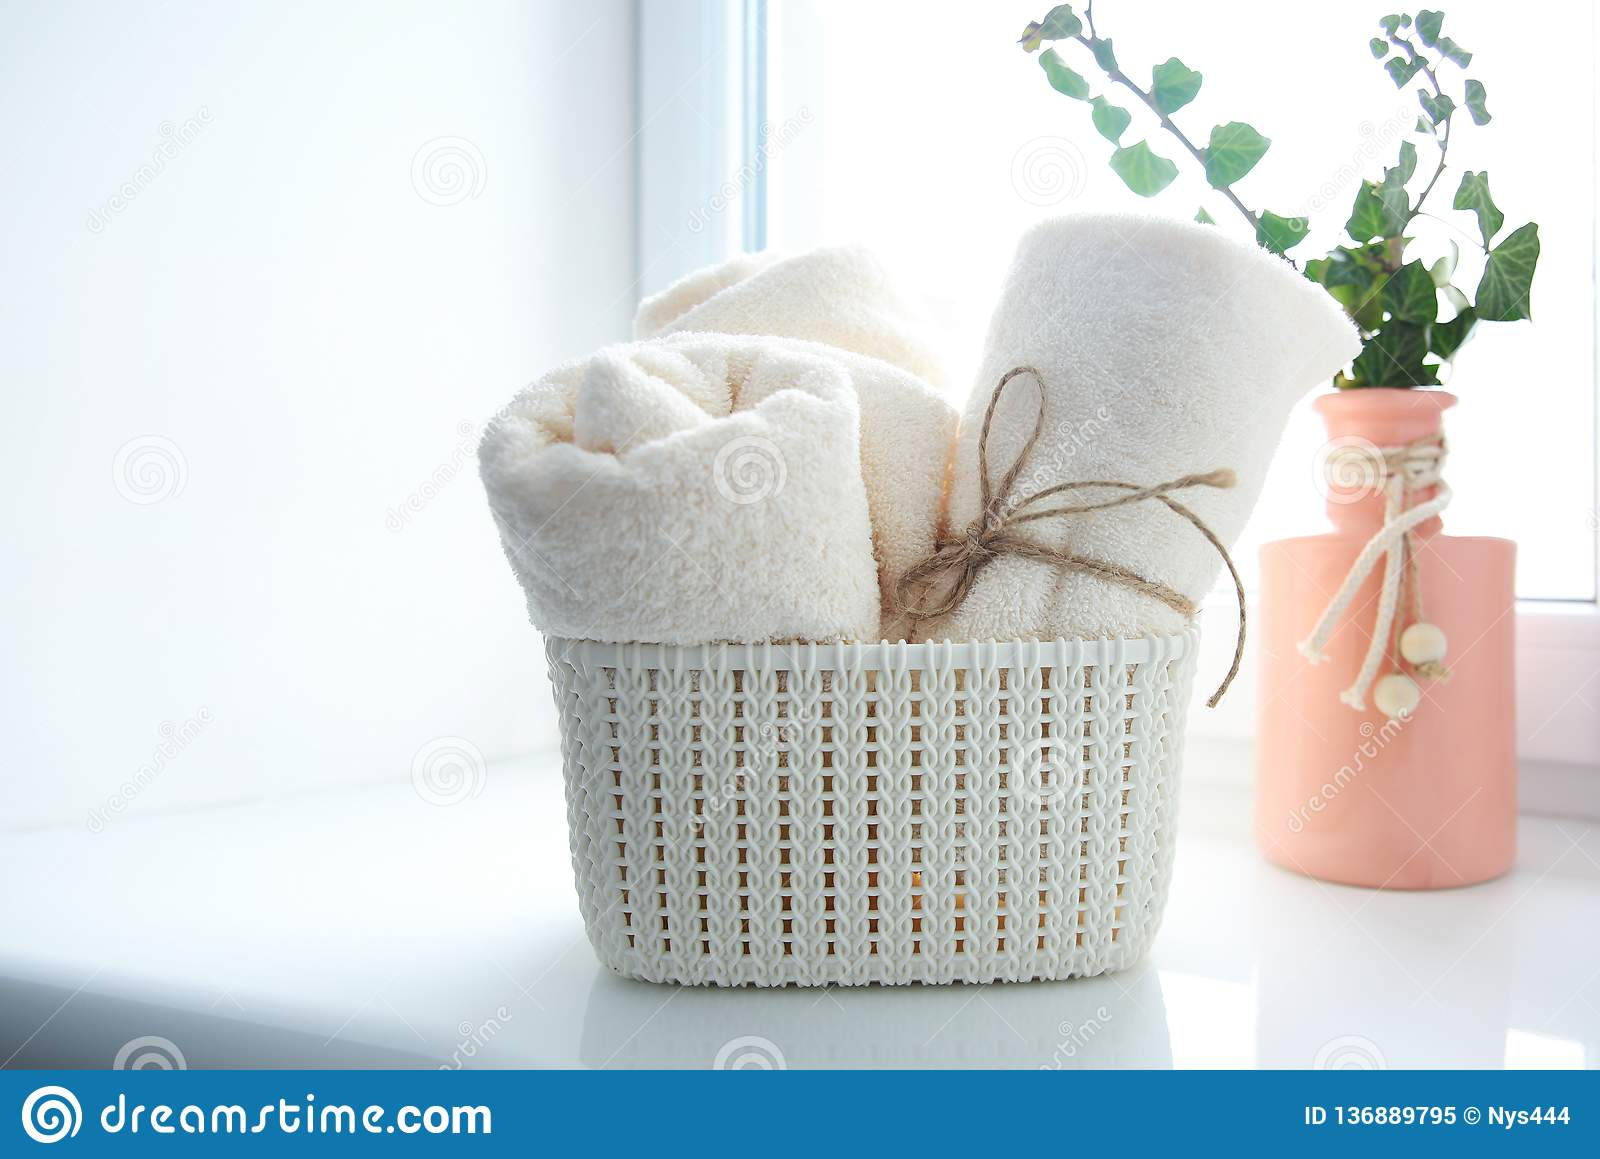 Bath Towels In Basket On Window Sill Empty Copy Space Stock Image Image Of Copy Pile 136889795